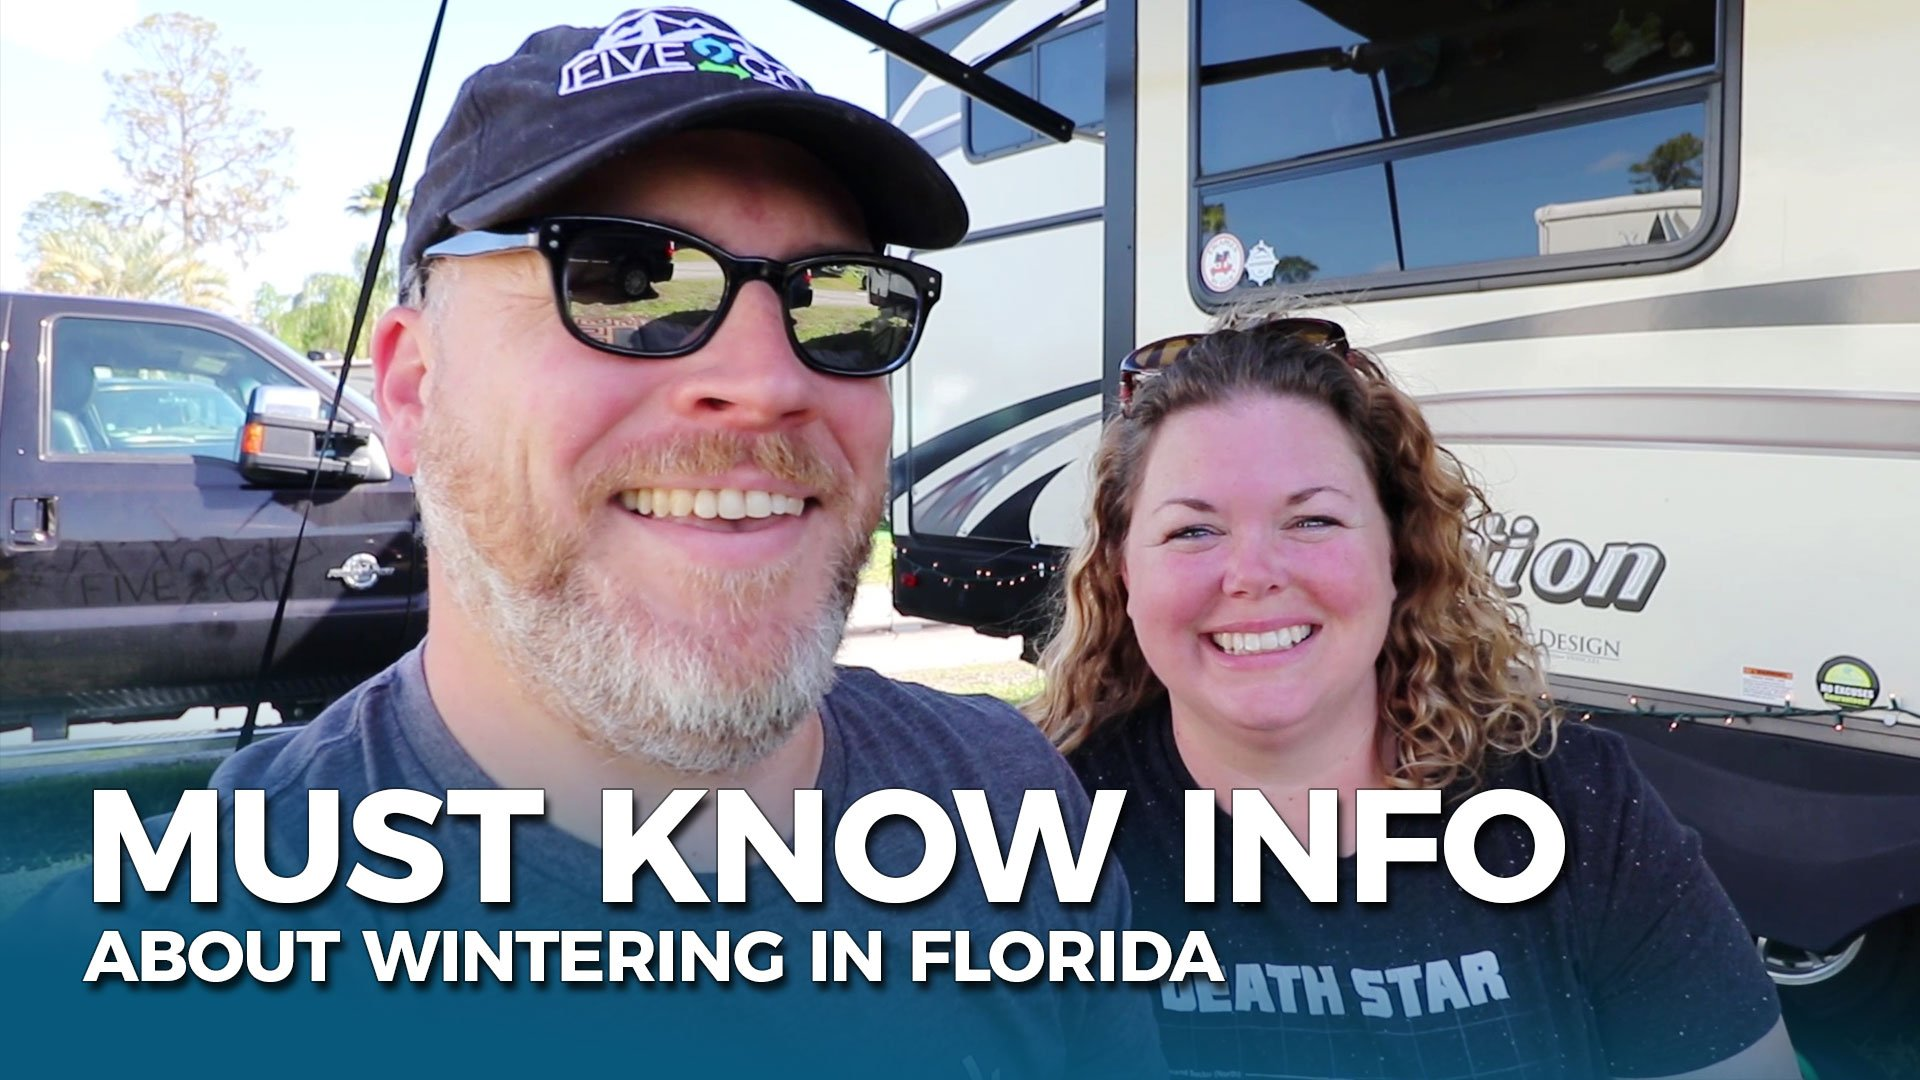 Must Know Info about Wintering in Florida